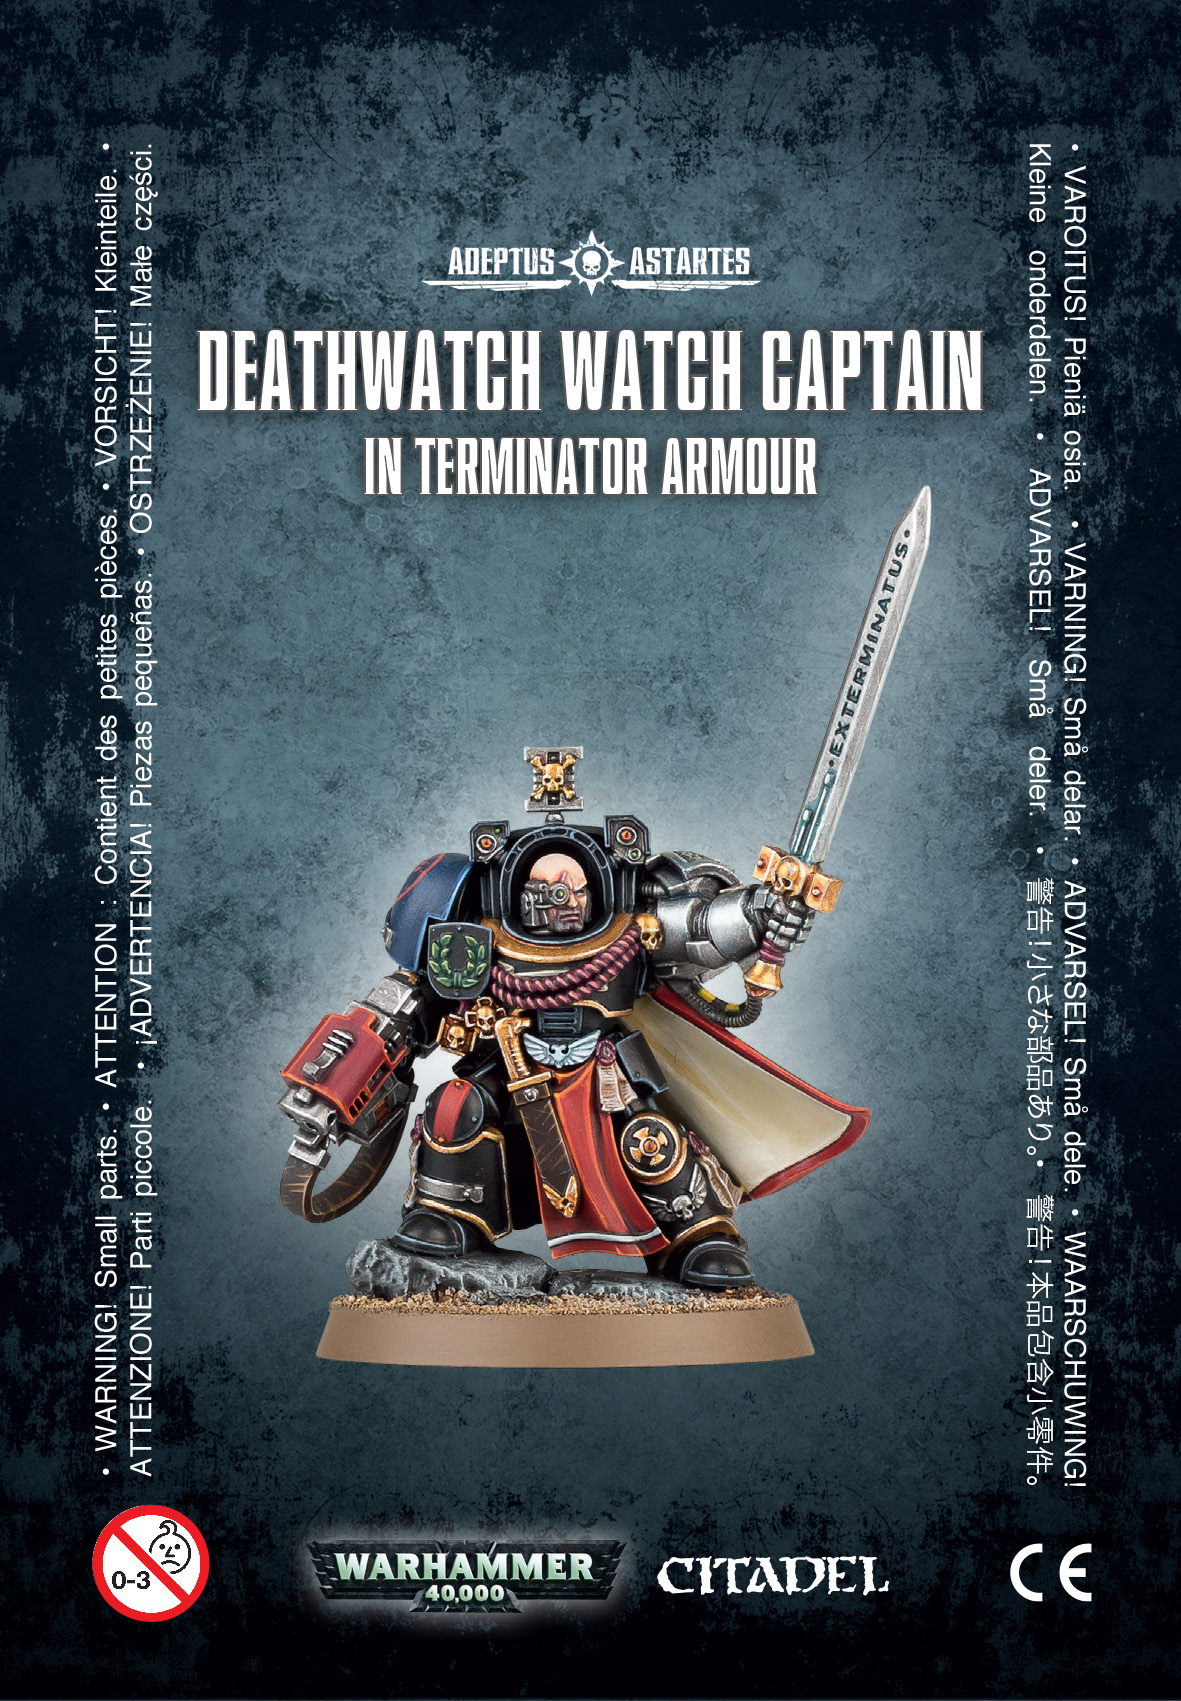 Warhammer 40,000: Deathwatch: Captain Terminator Armour